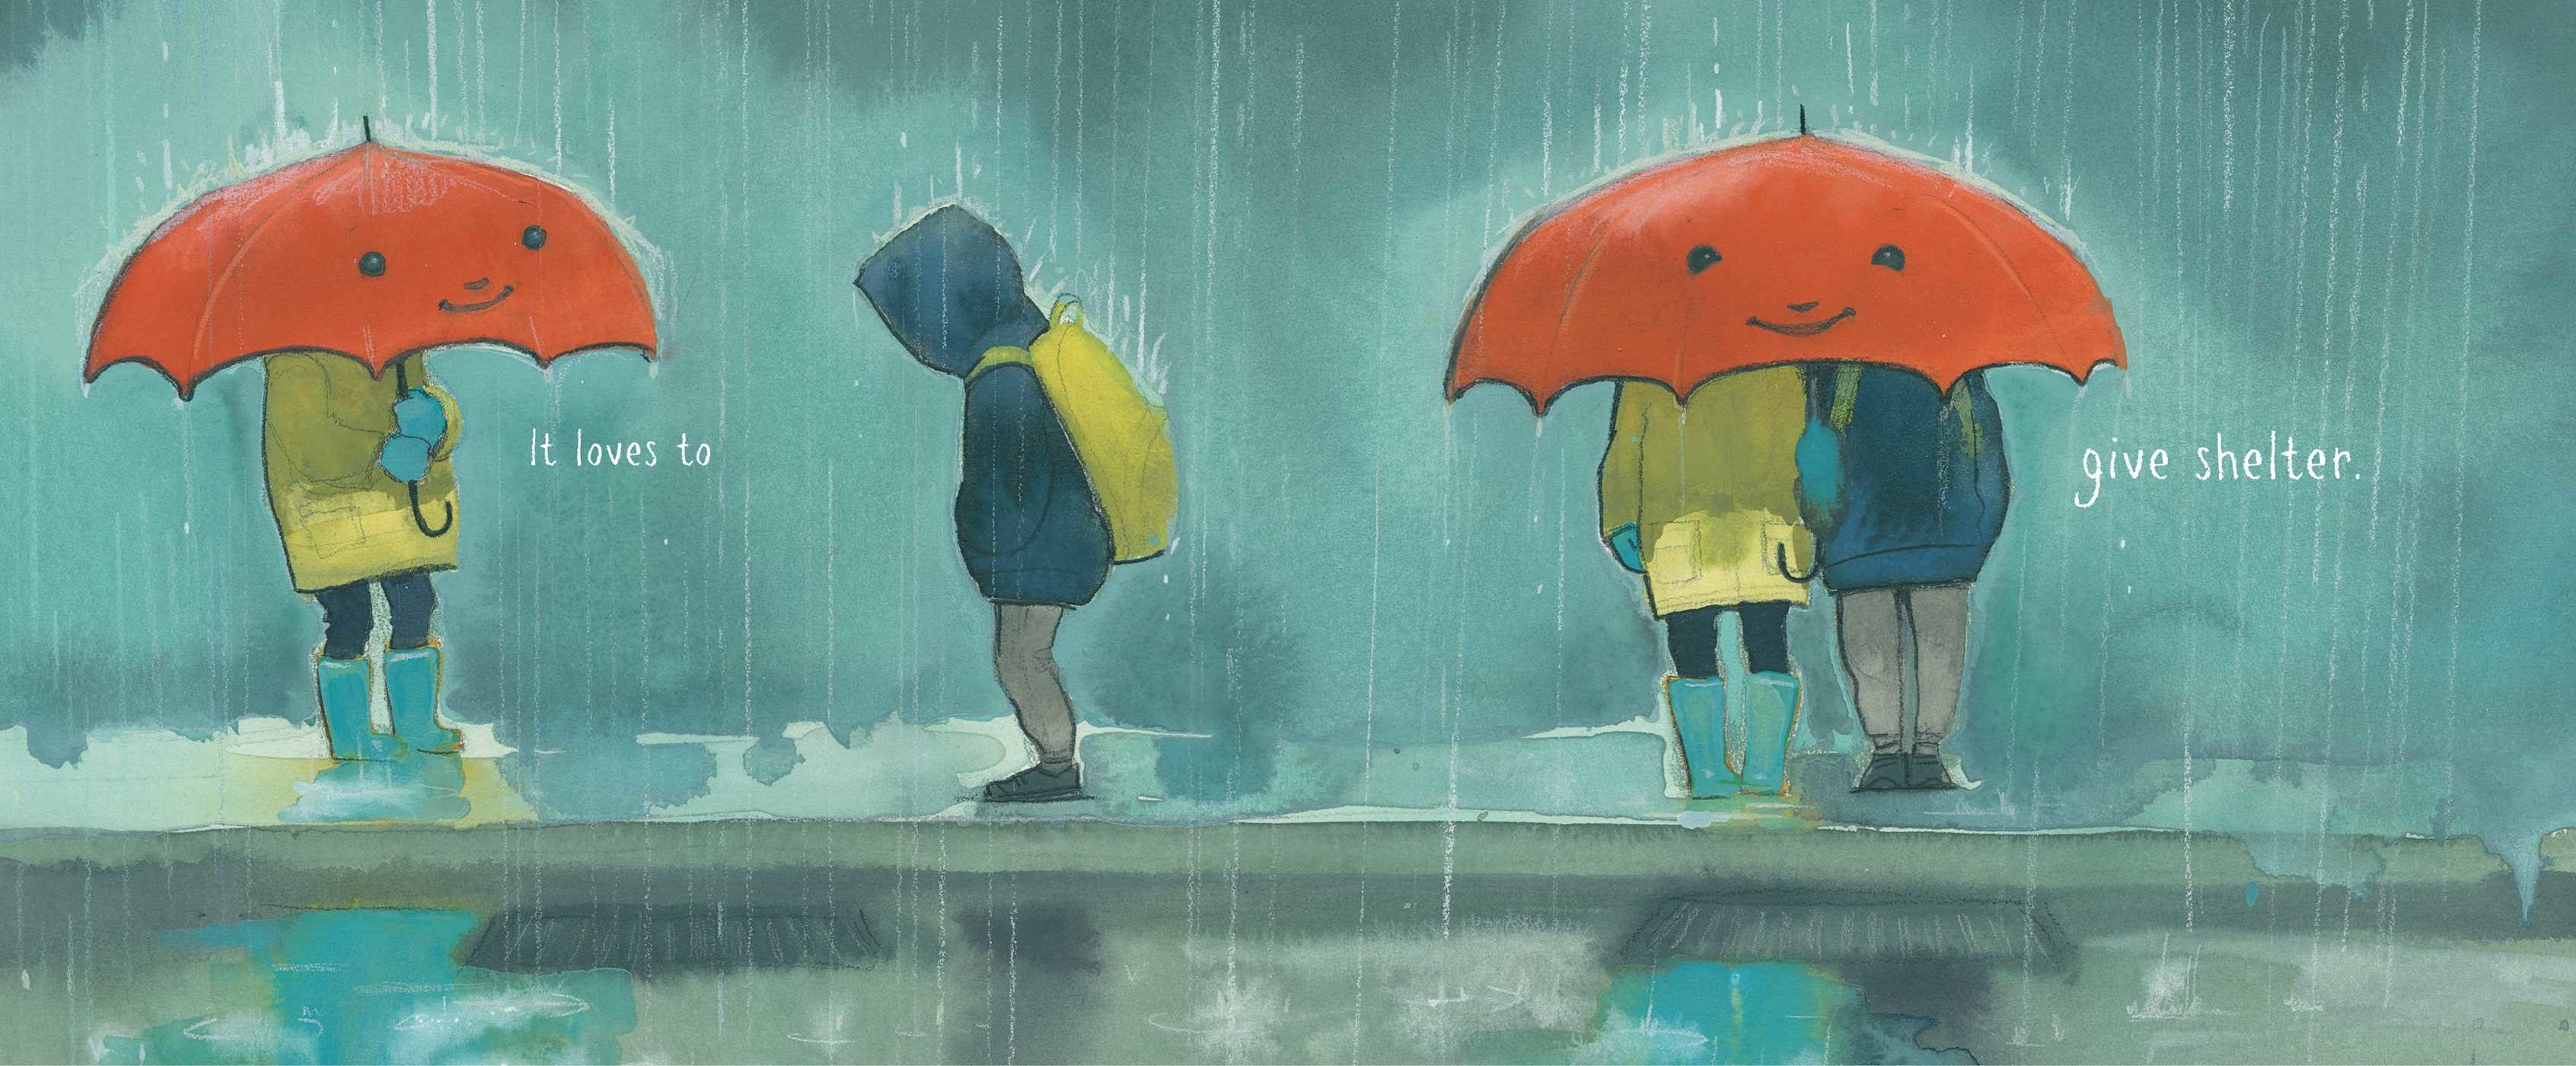 celebrate-picture-books-picture-book-review-the-big-umbrella-two